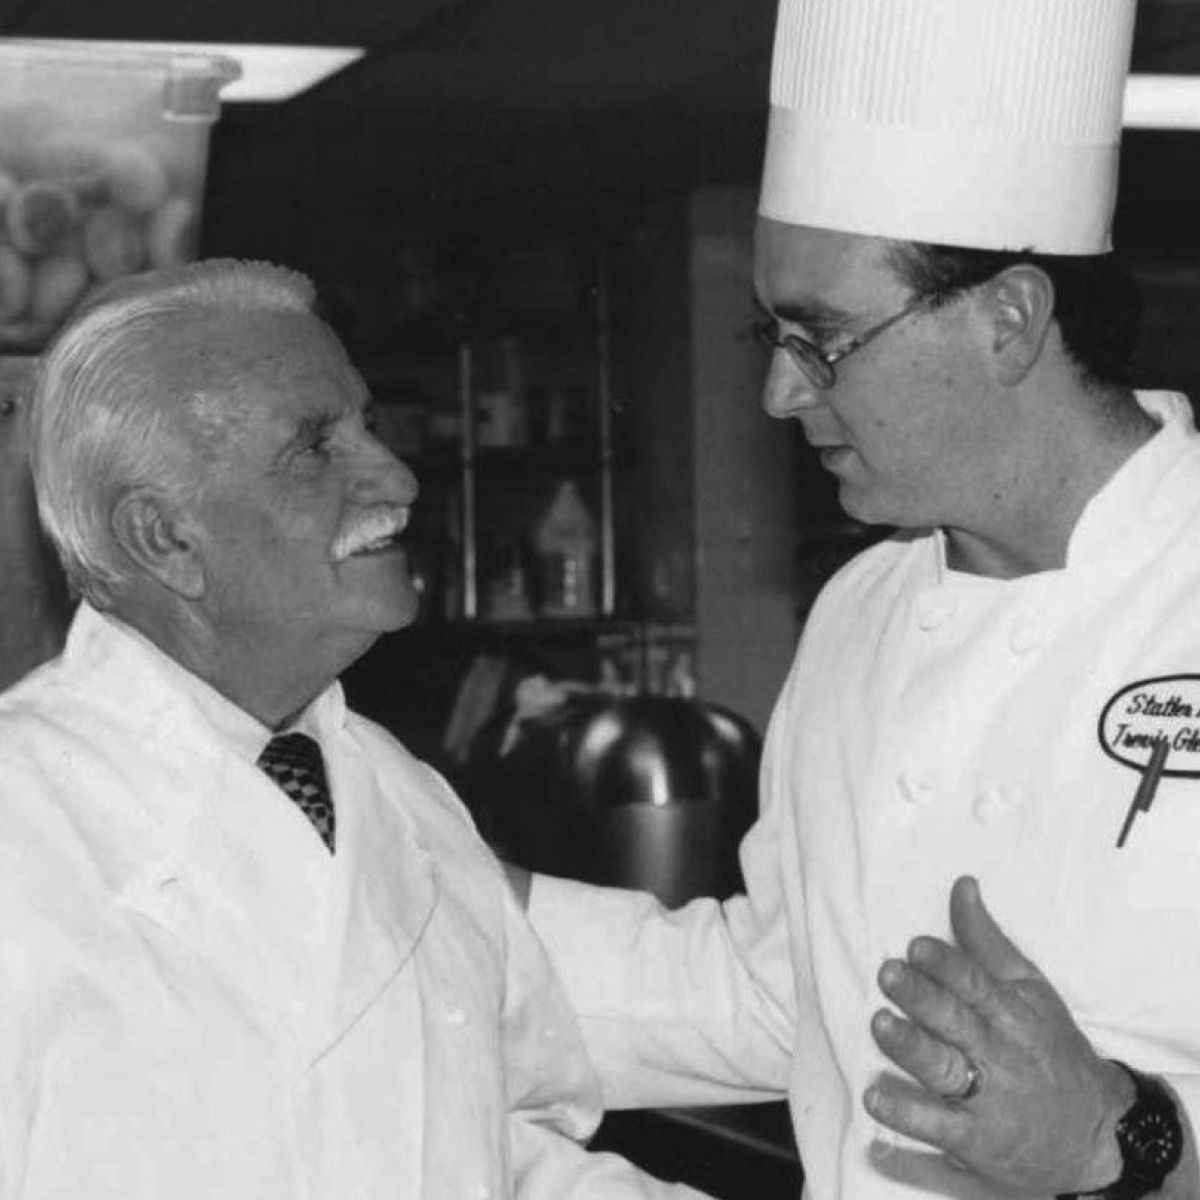 Forum on this topic: Chef Trevis Gleason's No. 1 Life With , chef-trevis-gleasons-no-1-life-with/